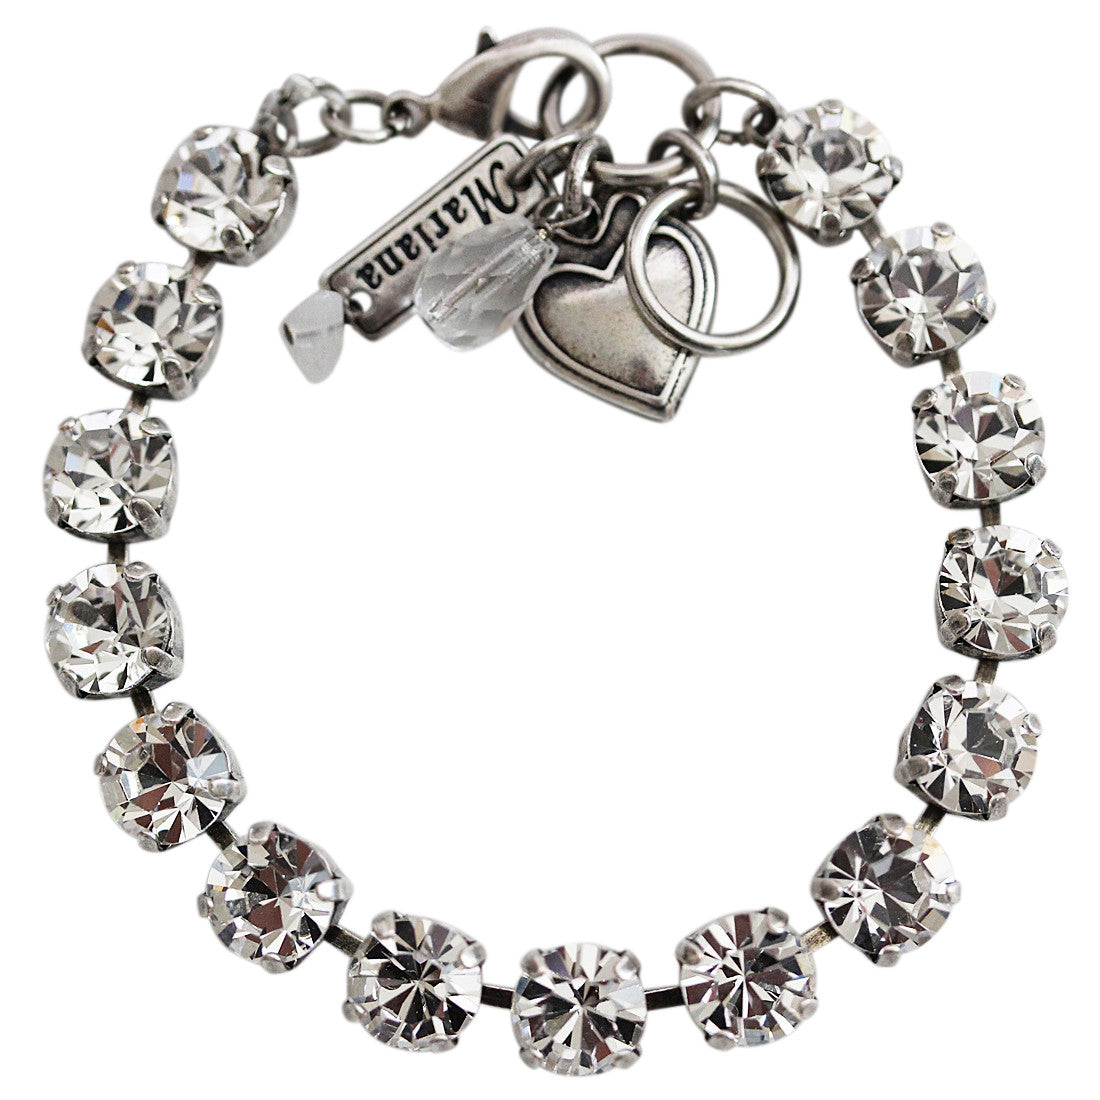 "Mariana Silver Plated Classic Shapes Swarovski Crystal Bracelet, 7"" On A Clear Day 4252 001001"